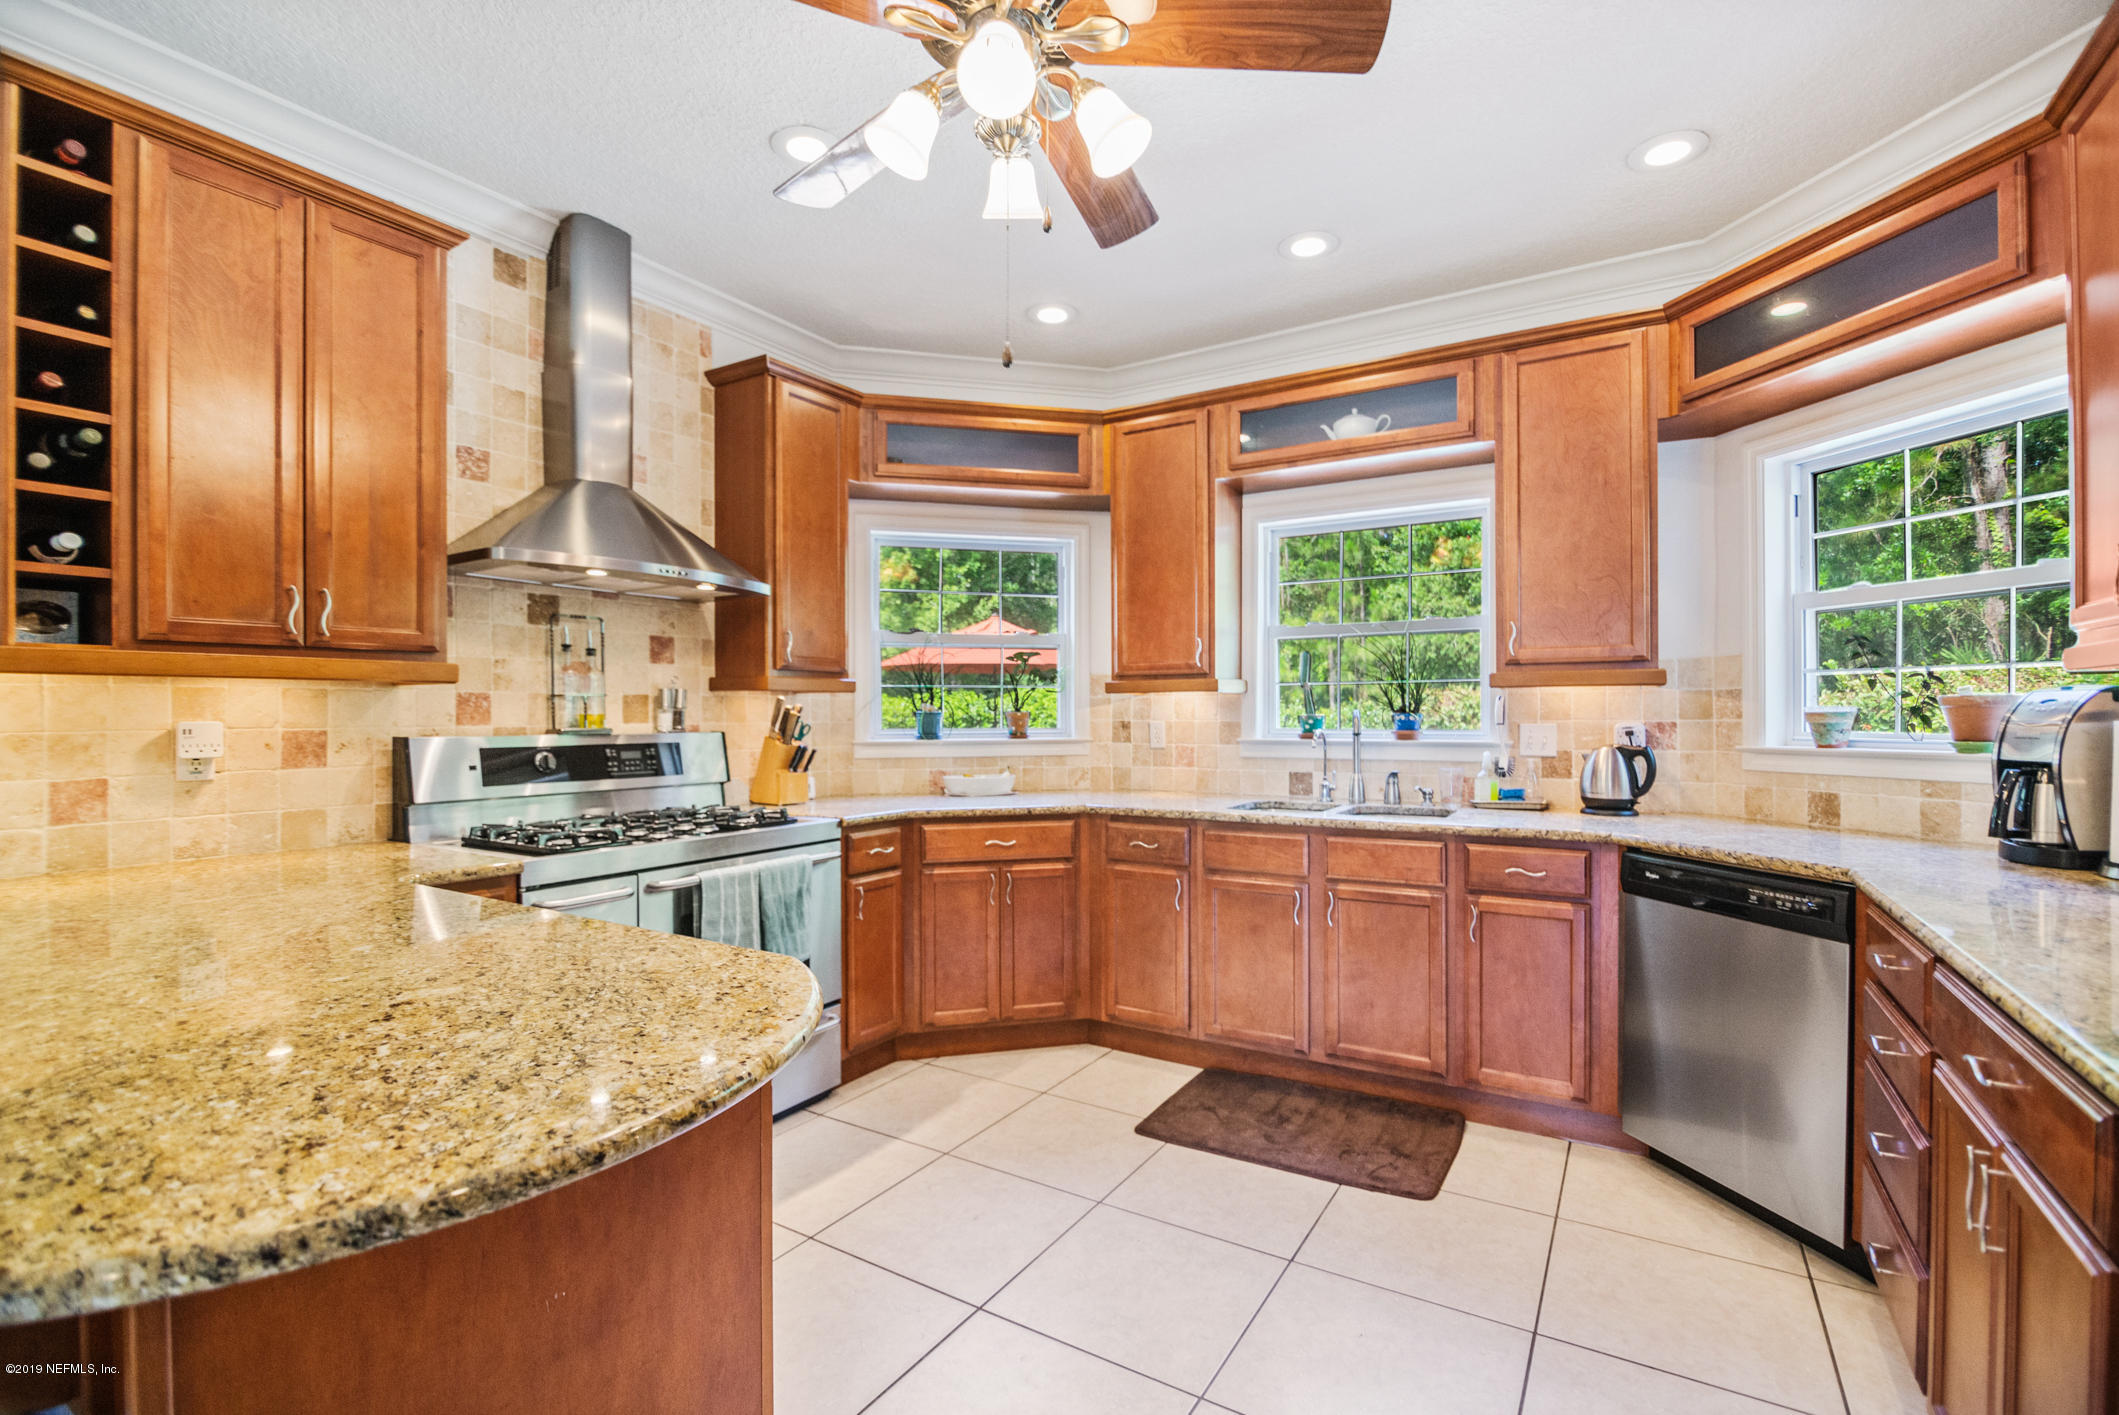 1880-A COUNTY ROAD 214, ST AUGUSTINE, FLORIDA 32084, 5 Bedrooms Bedrooms, ,4 BathroomsBathrooms,Residential,For sale,COUNTY ROAD 214,1002161